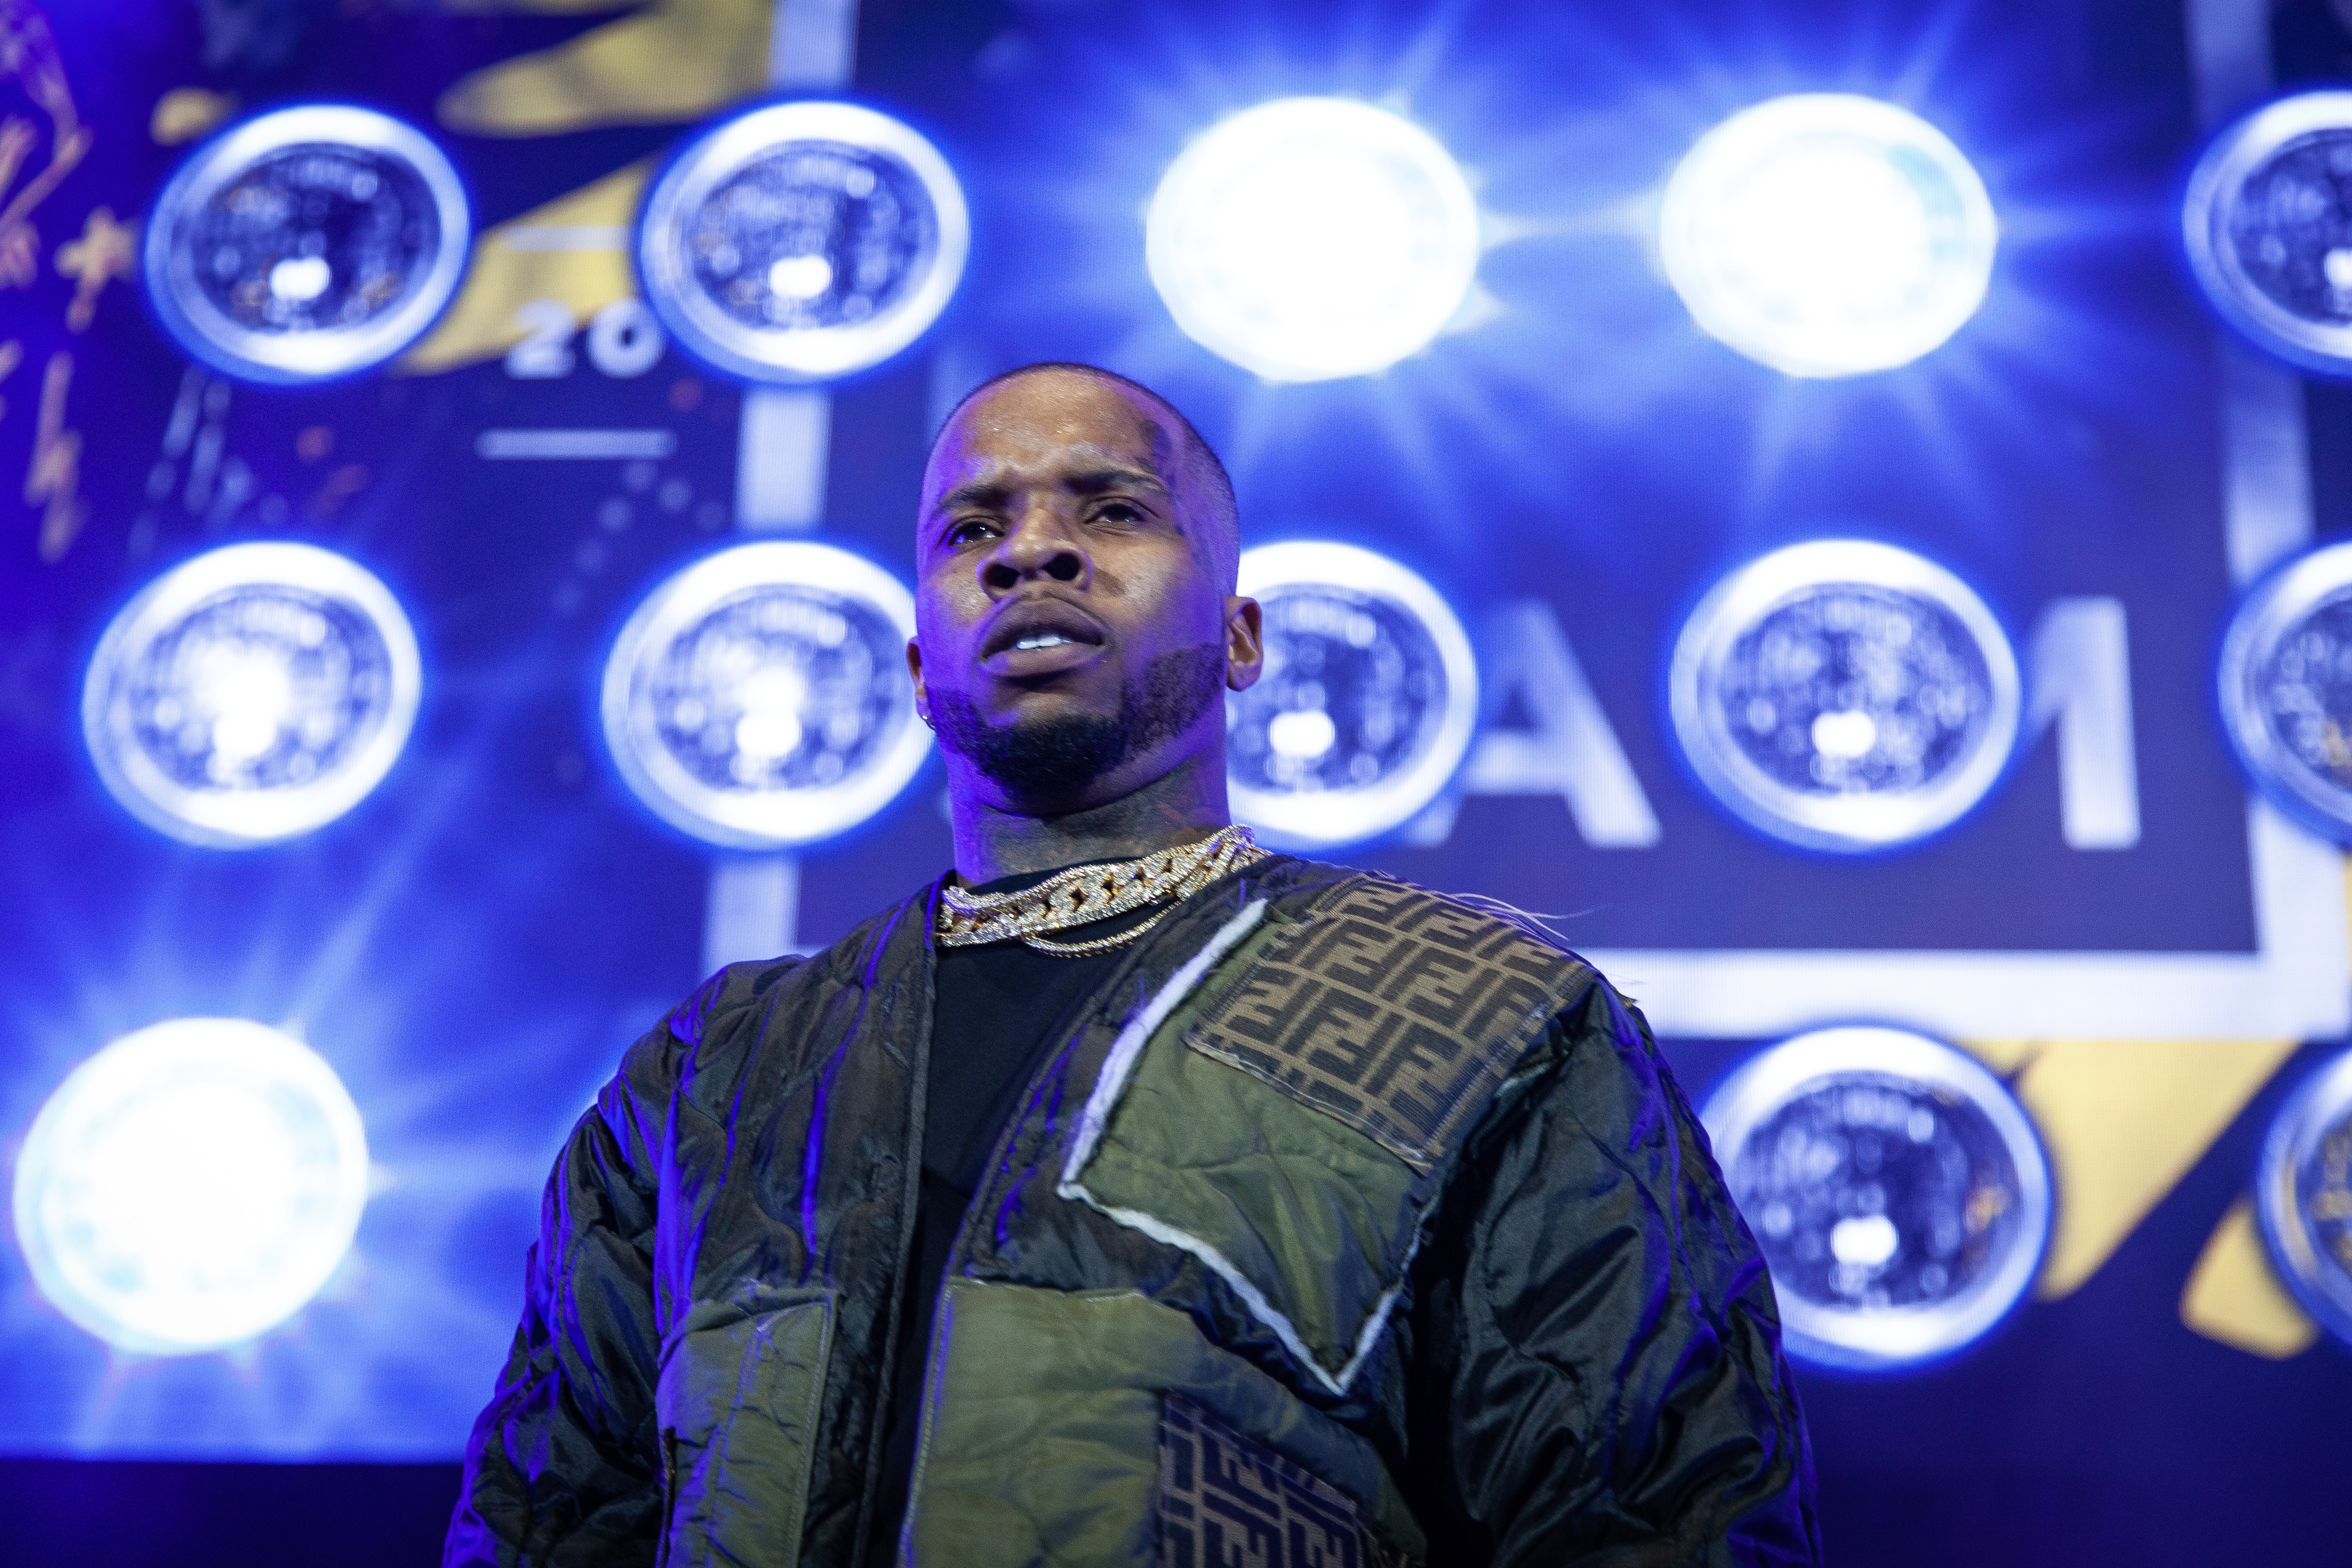 Tory Lanez Starts Dream City Fund To Help Families Affected By COVID-19